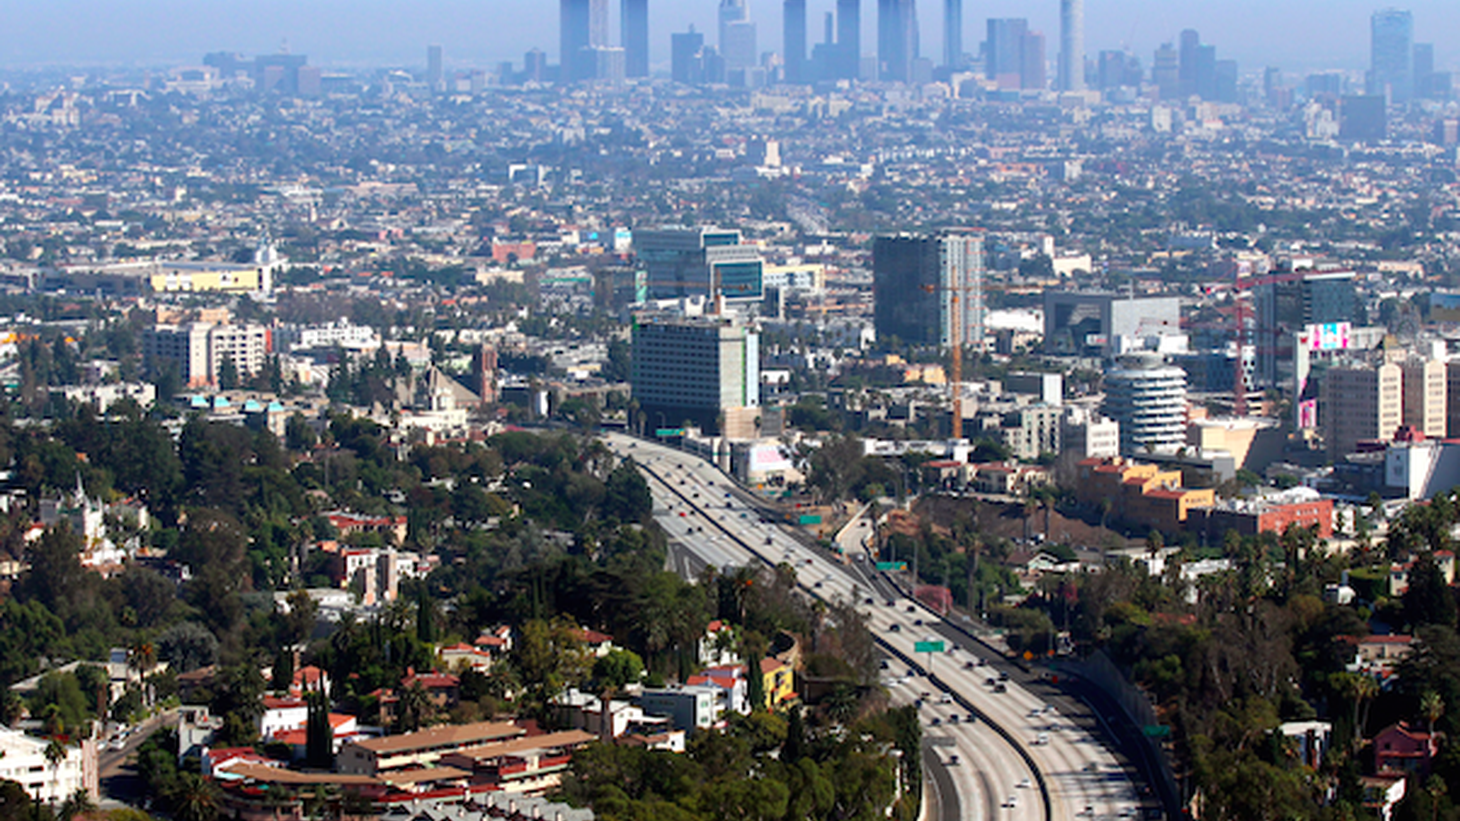 The air in Los Angeles violated federal standards for 87 days in a row this year. That hasn't happened in nearly two decades.